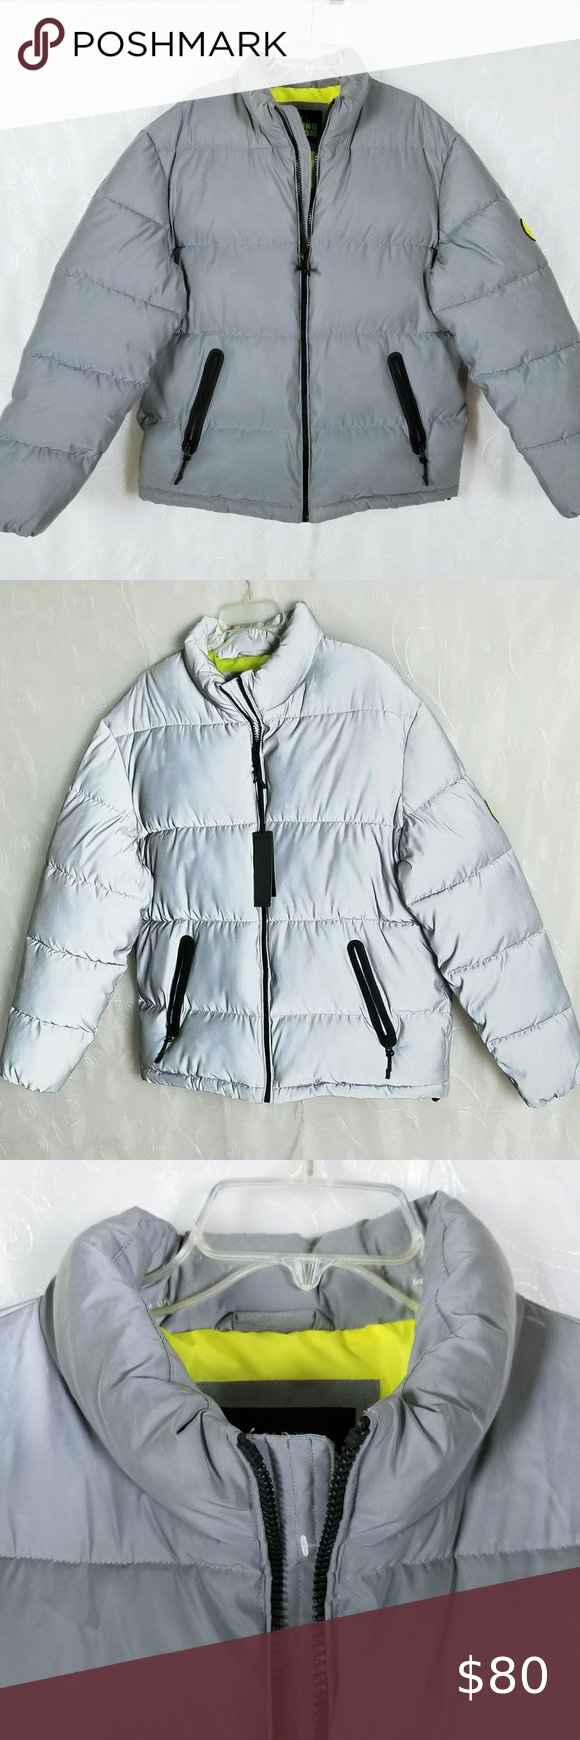 Ae X Young Money Reflective Puffer Jacket Grey Gray Jacket Jackets Clothes Design [ 1740 x 580 Pixel ]